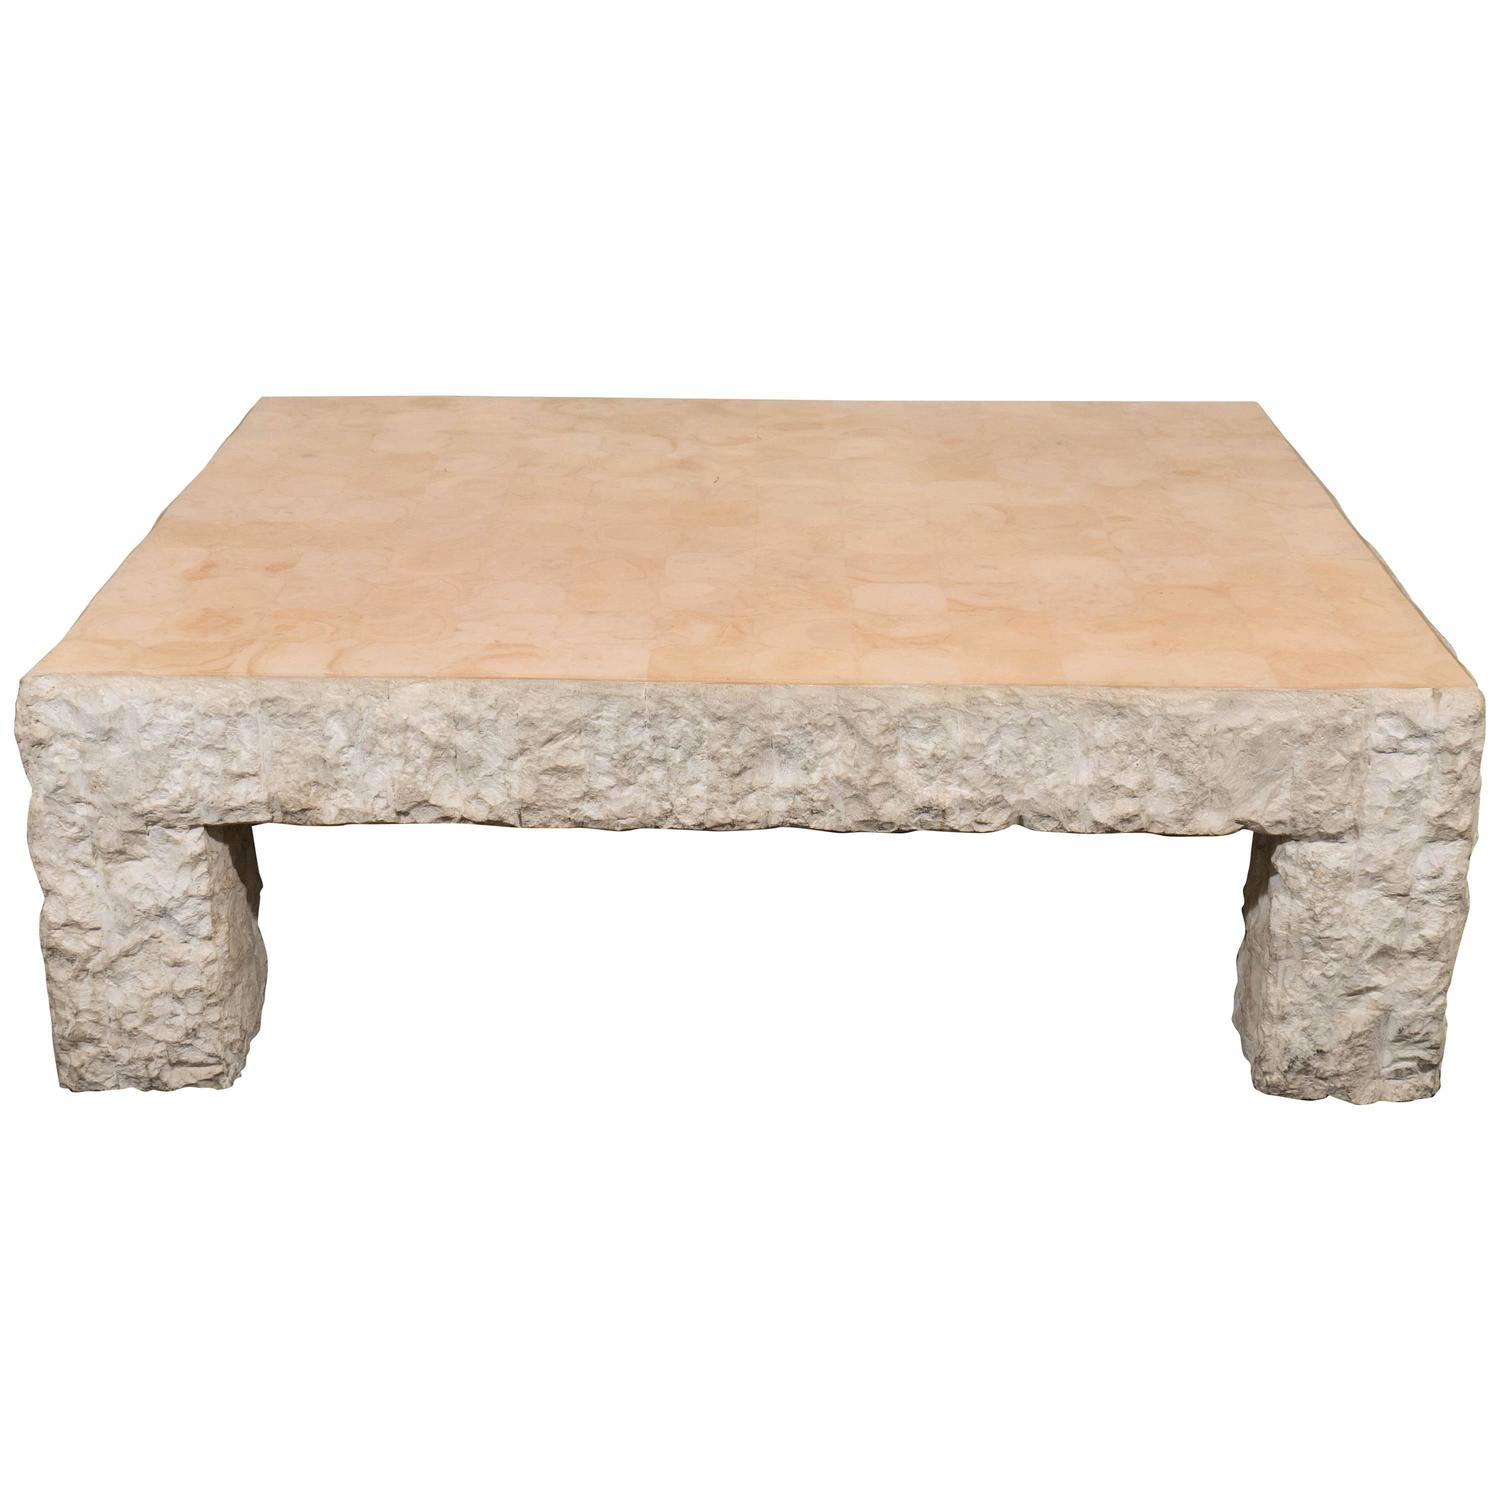 Maitland smith rough edge travertine coffee table at 1stdibs geotapseo Image collections